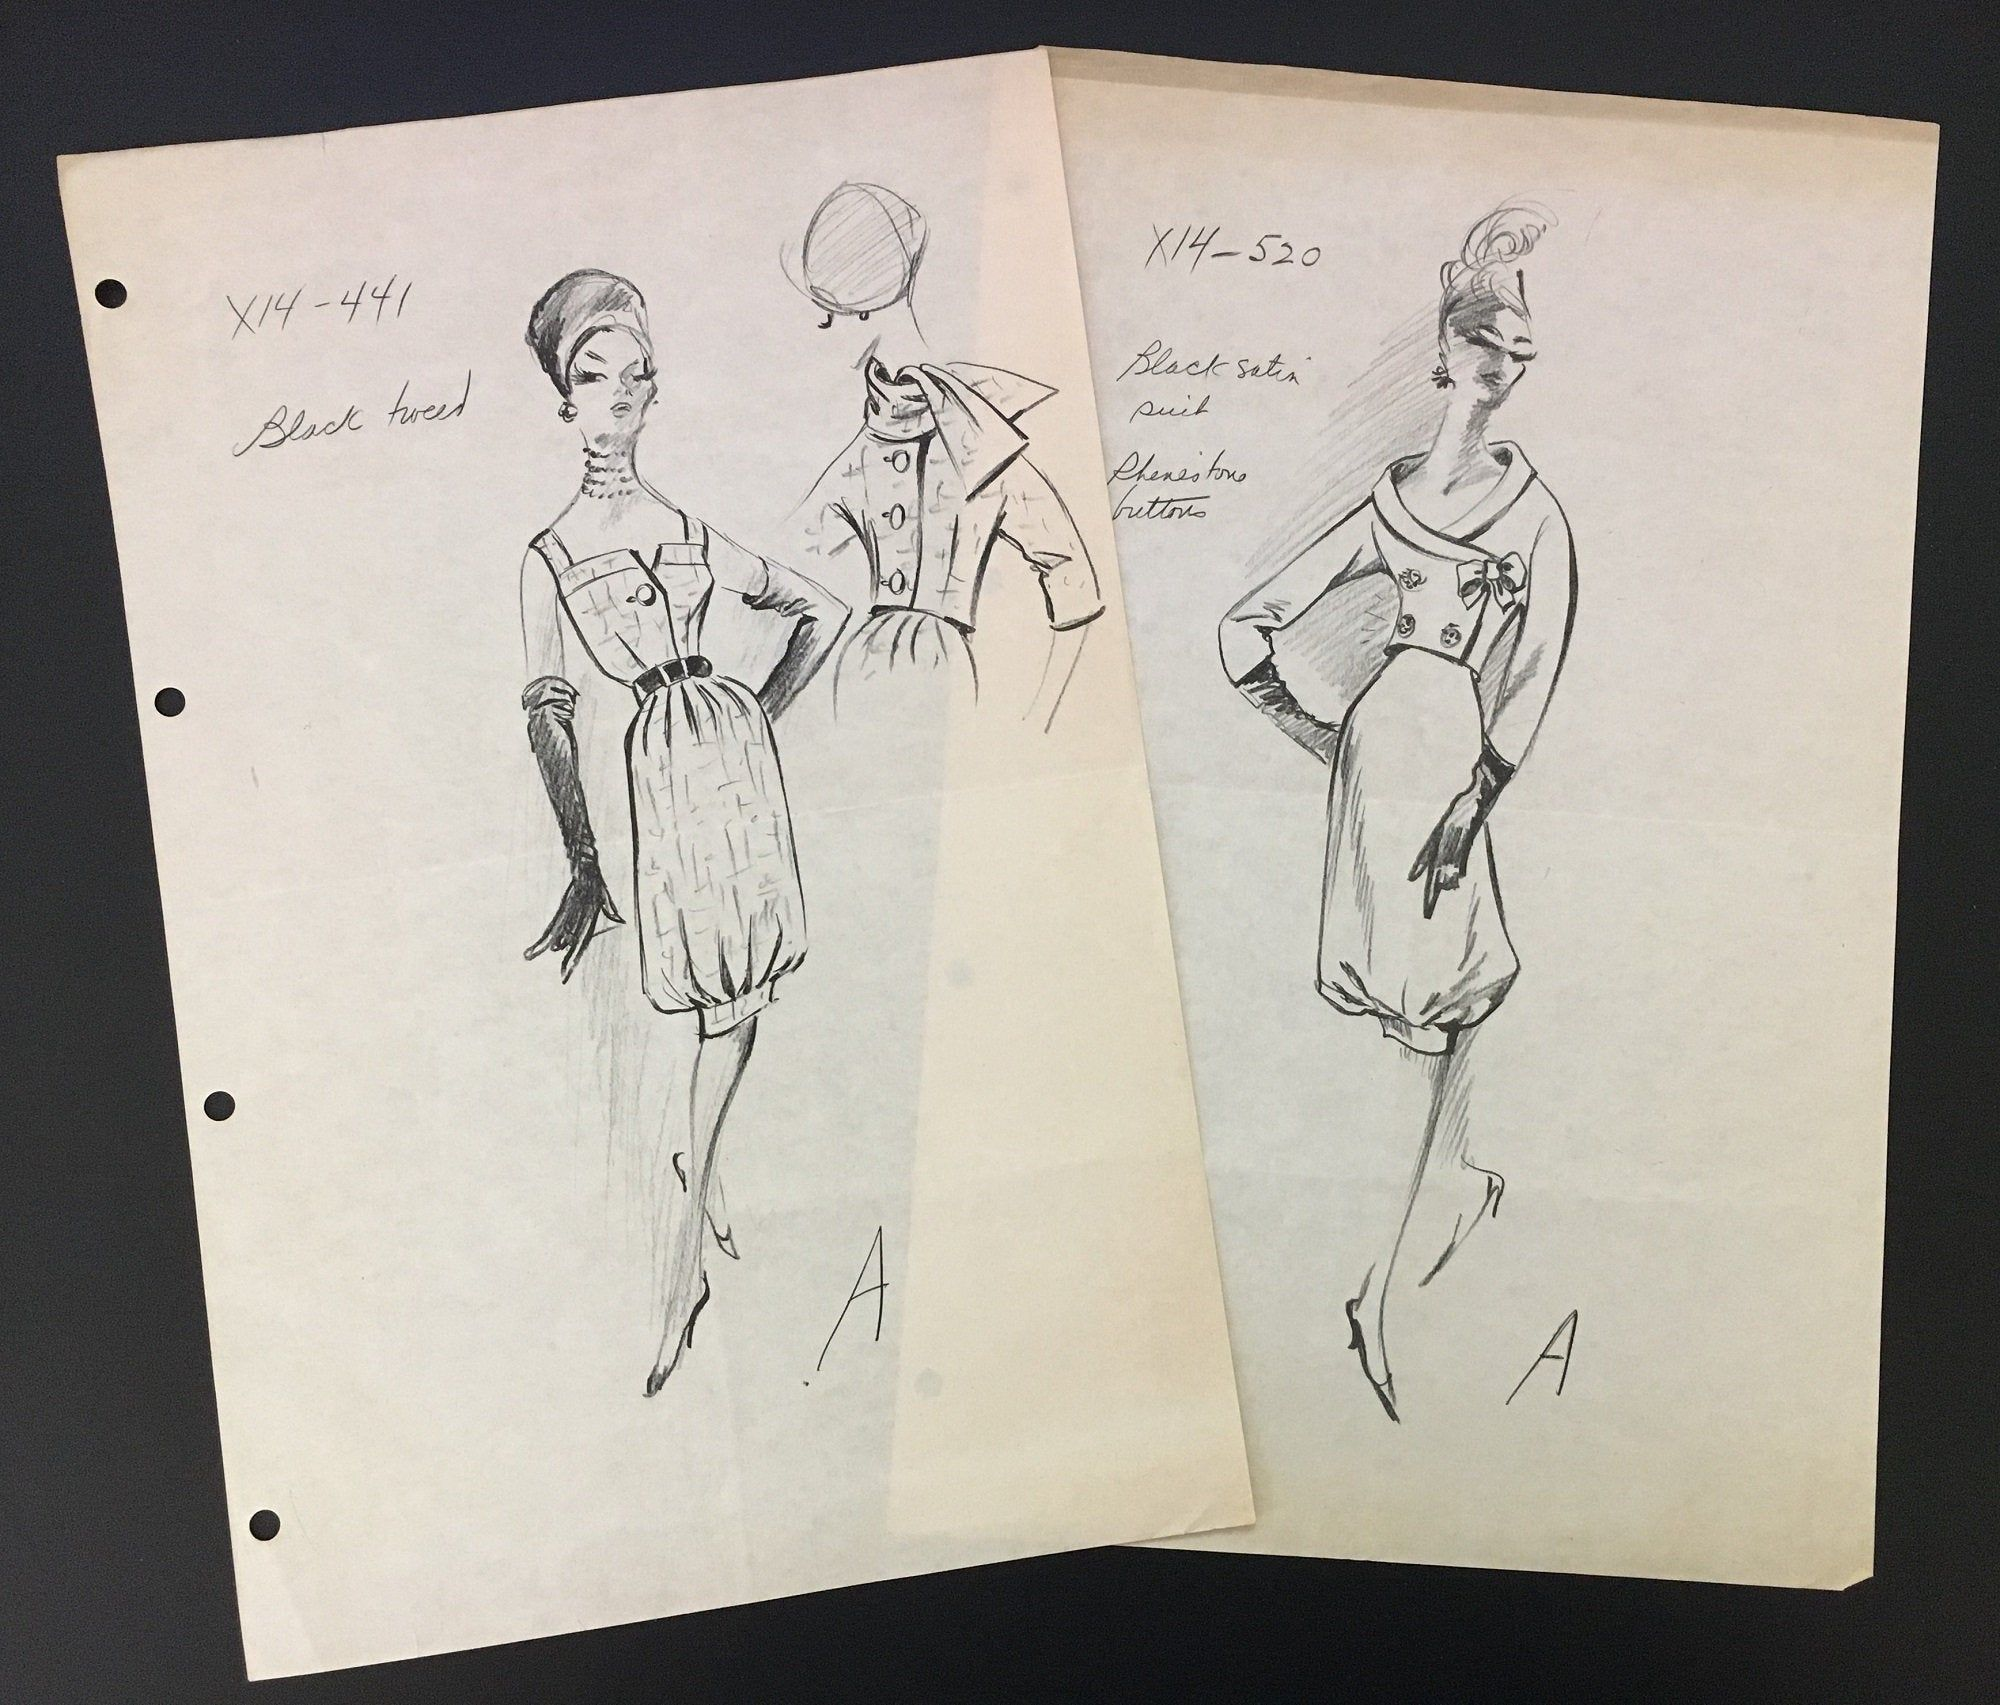 2 Vintage Fashion Designer Sketches Stat Sheet Drawing Dior Haute Couture Dress X14 441 X14 520 Cardinal Fashion Fashion Design Vintage Fashion Fashion Studio